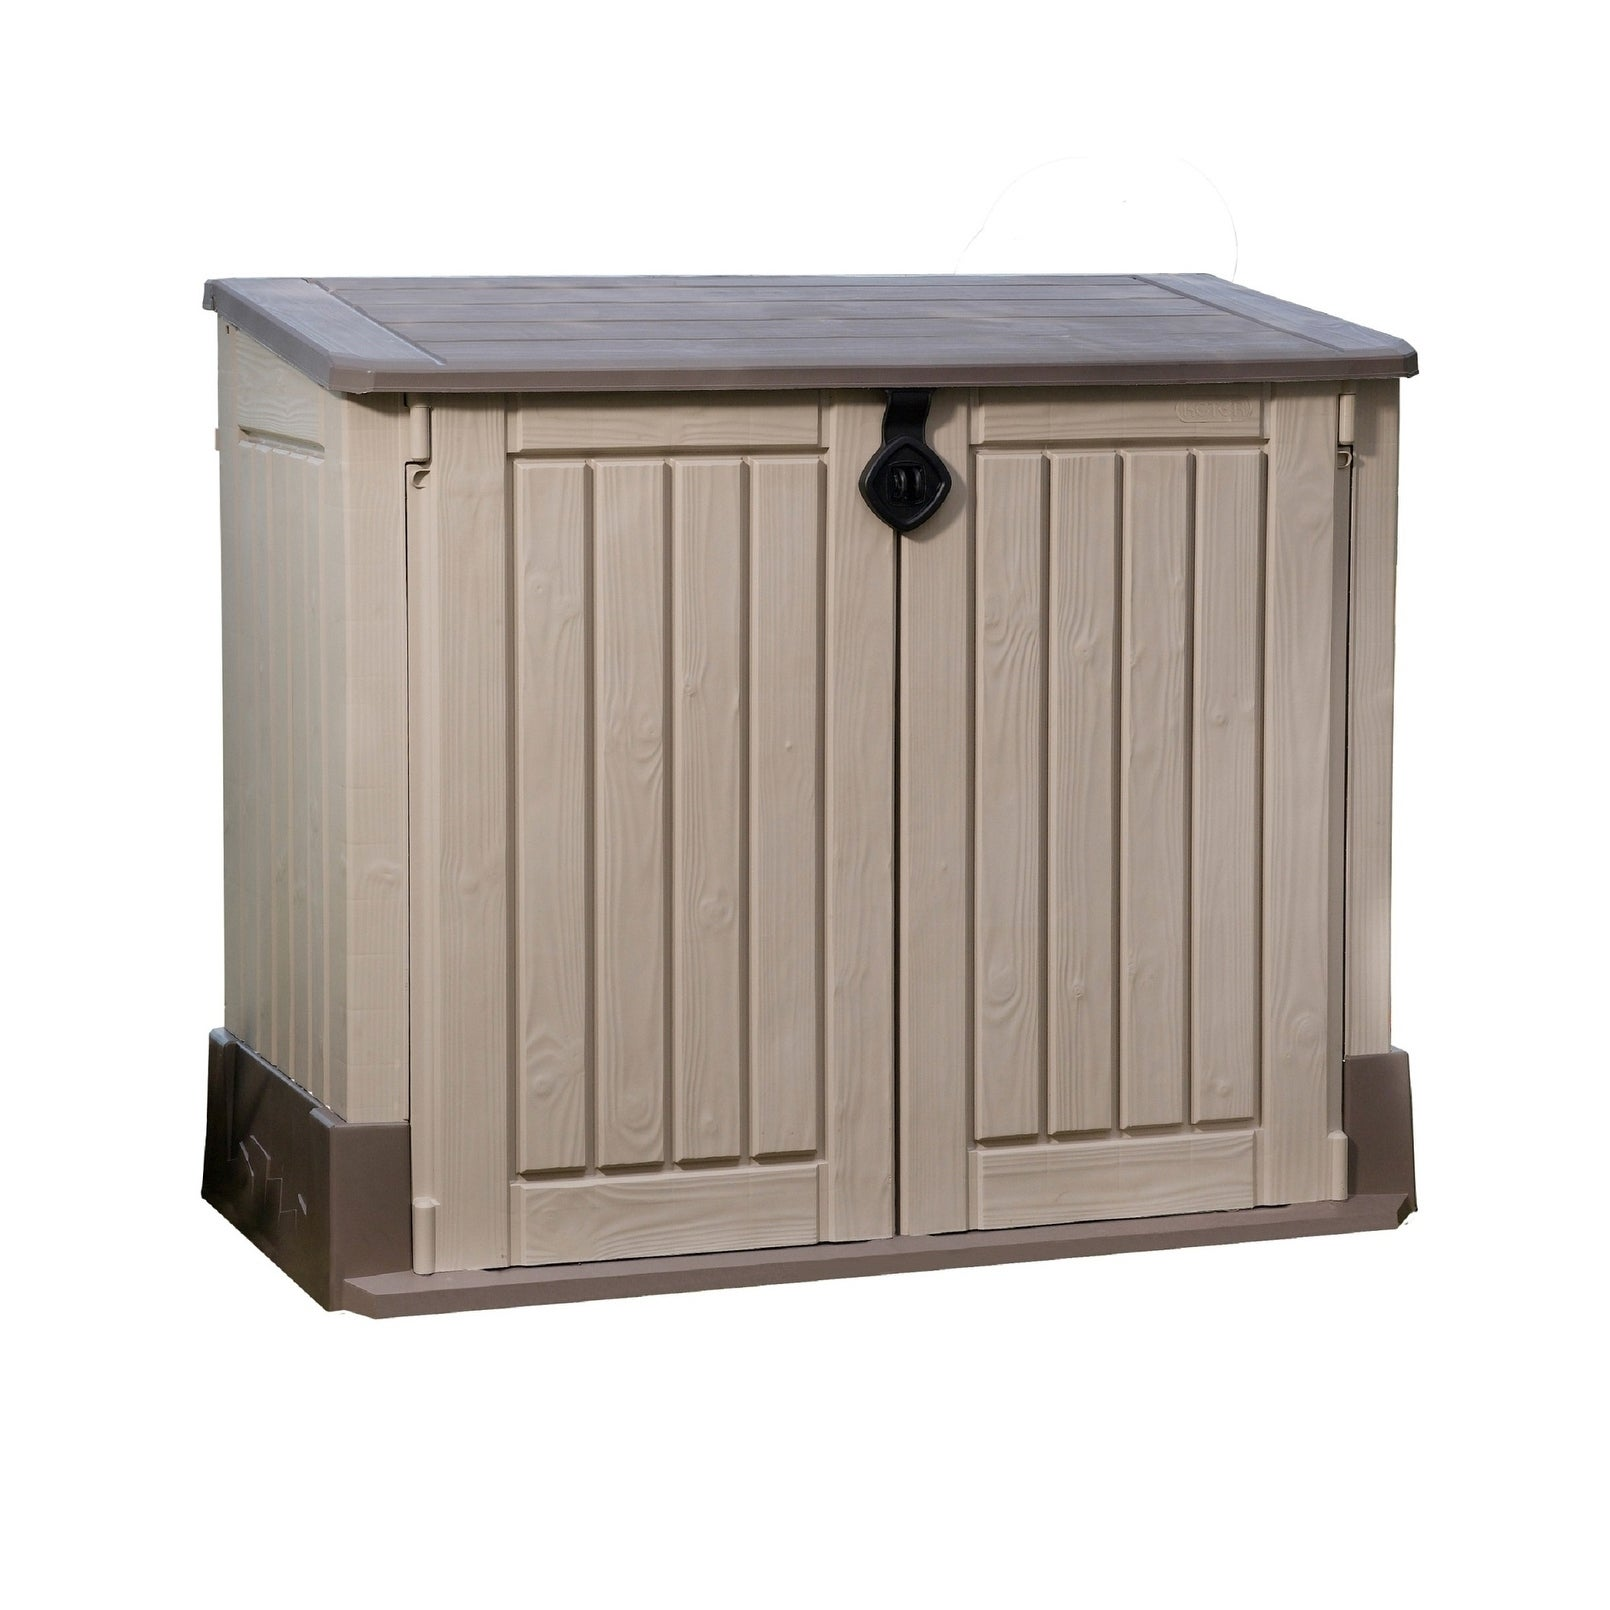 Attirant Shop Keter Store It Out MIDI Outdoor Plastic Resin Horizontal Storage Shed    Free Shipping Today   Overstock.com   23128238